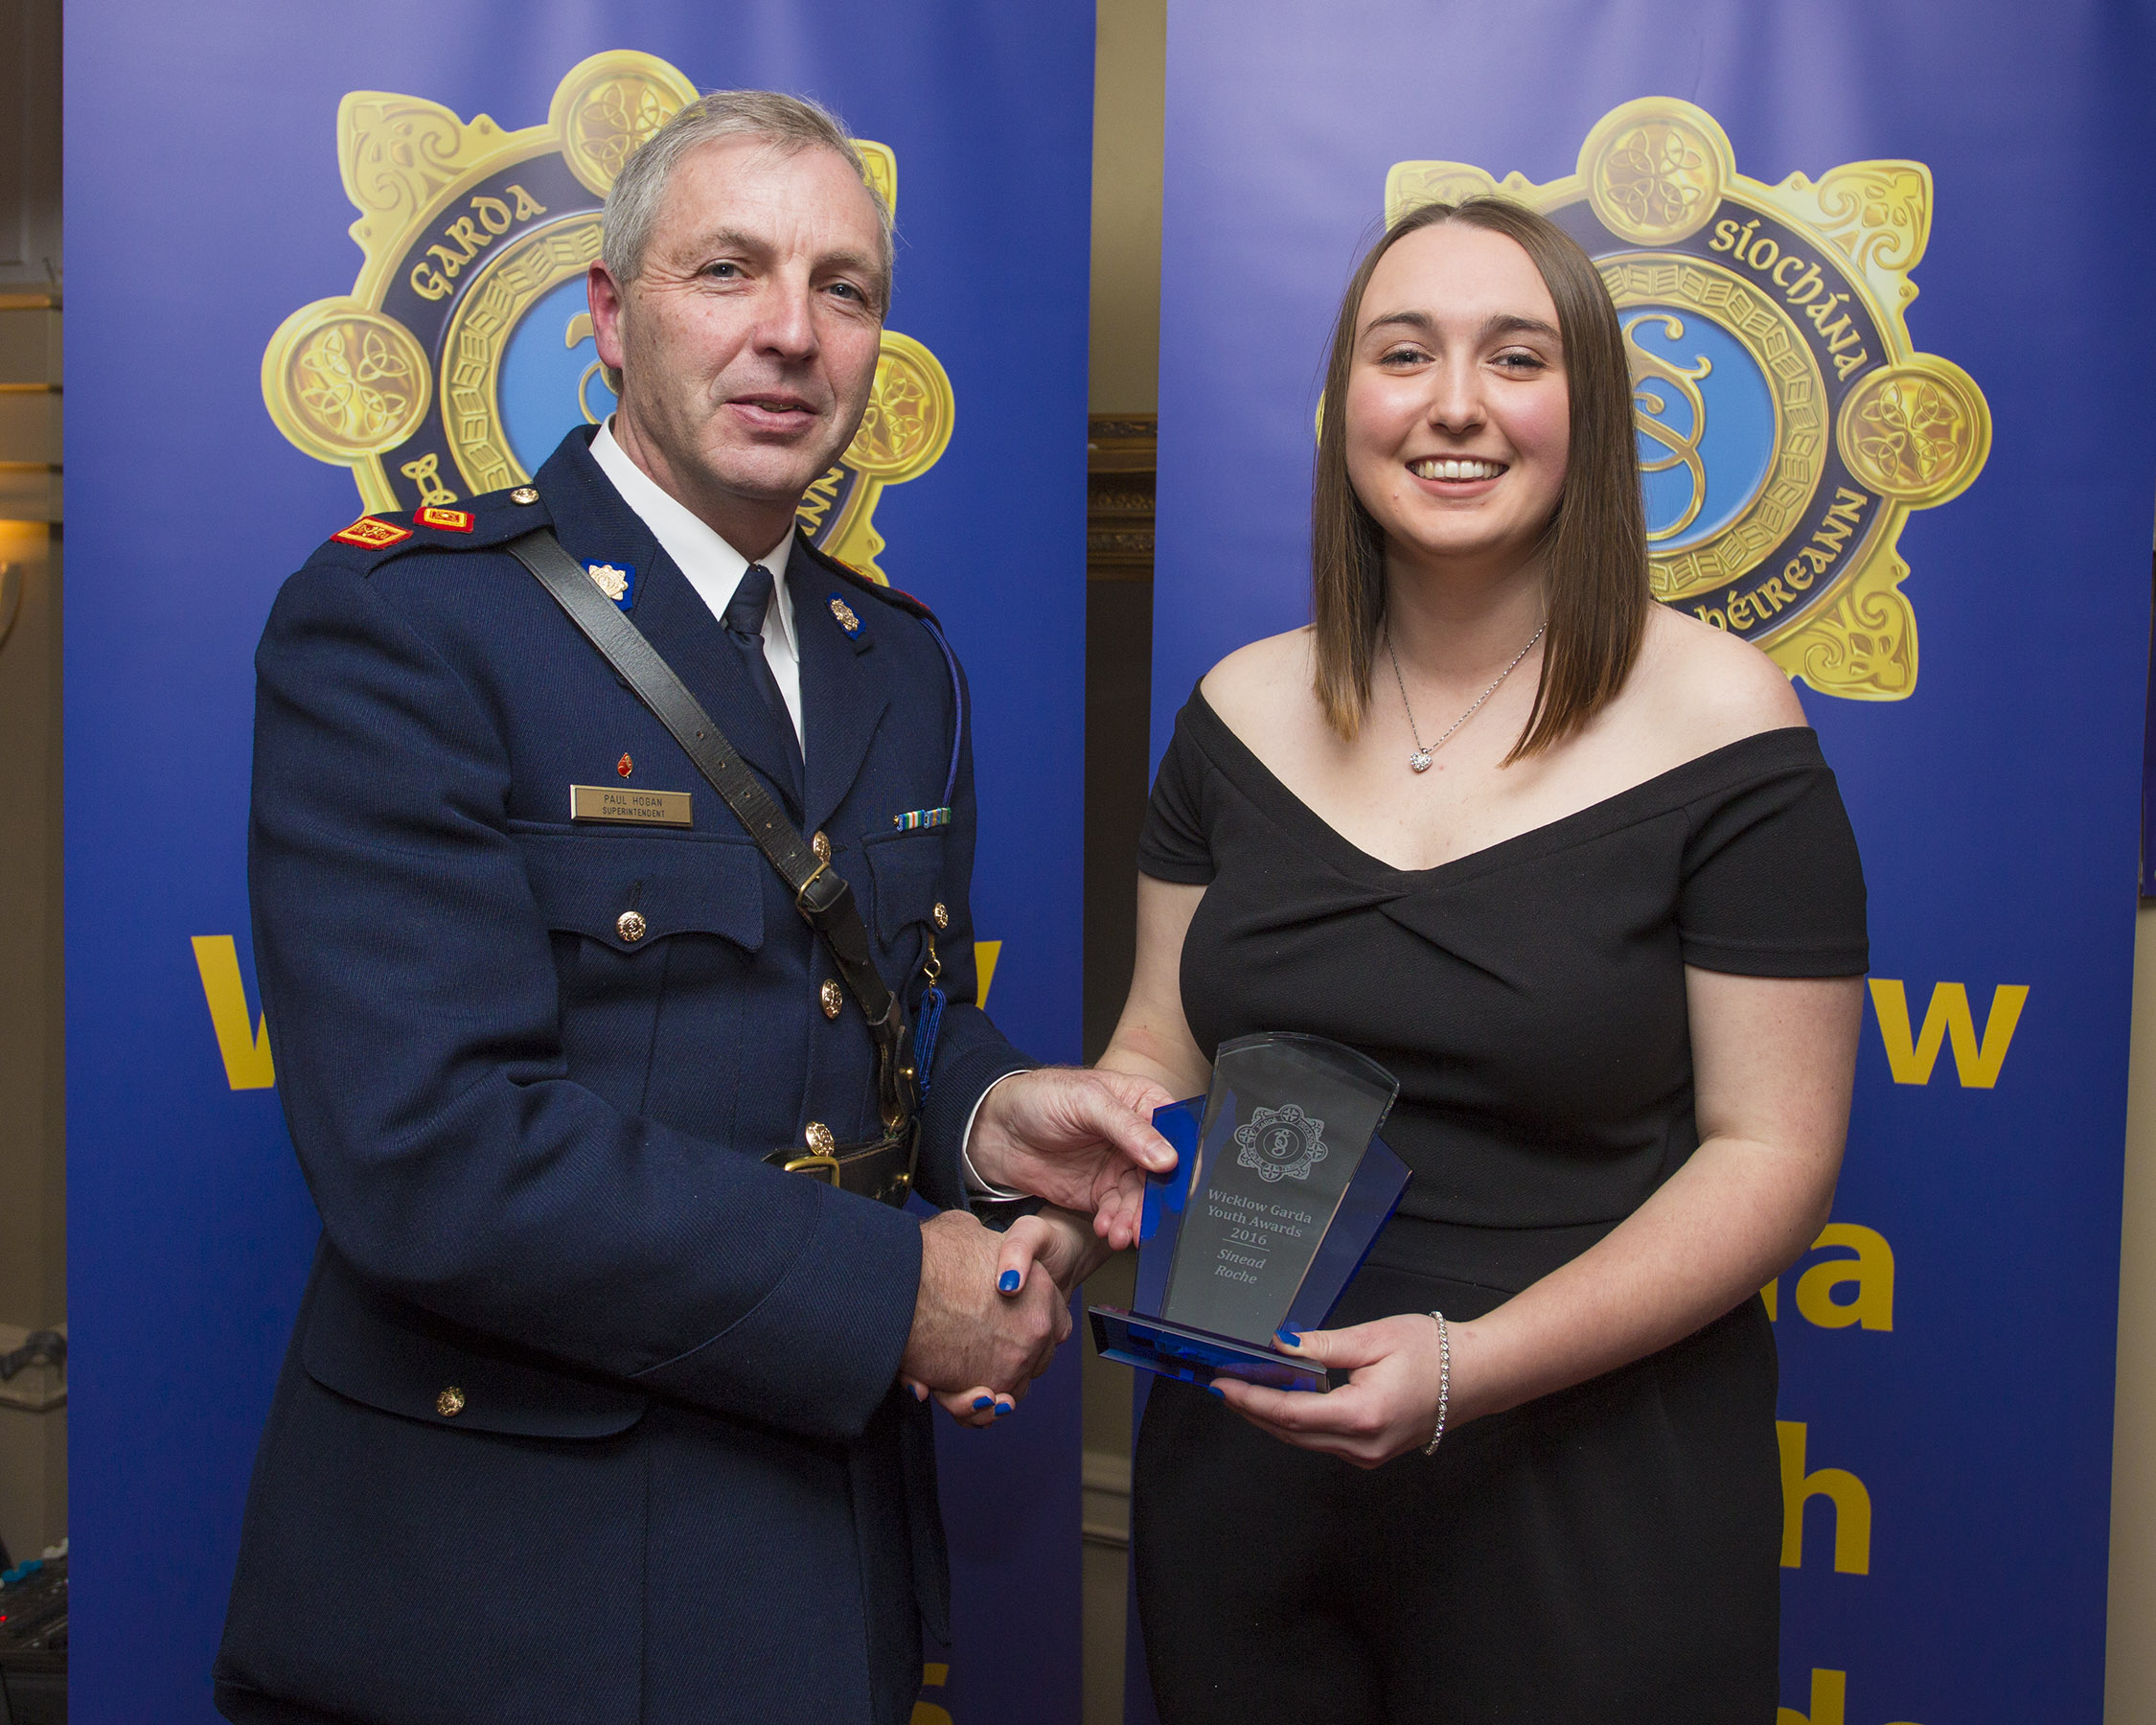 Sinead Roche from Kilcoole recieves her youth award from Superintendant Paul Hogan at the 2nd Annual Wicklow Garda Youth Awards which was held in the Grand Hotel, Wicklow Town.